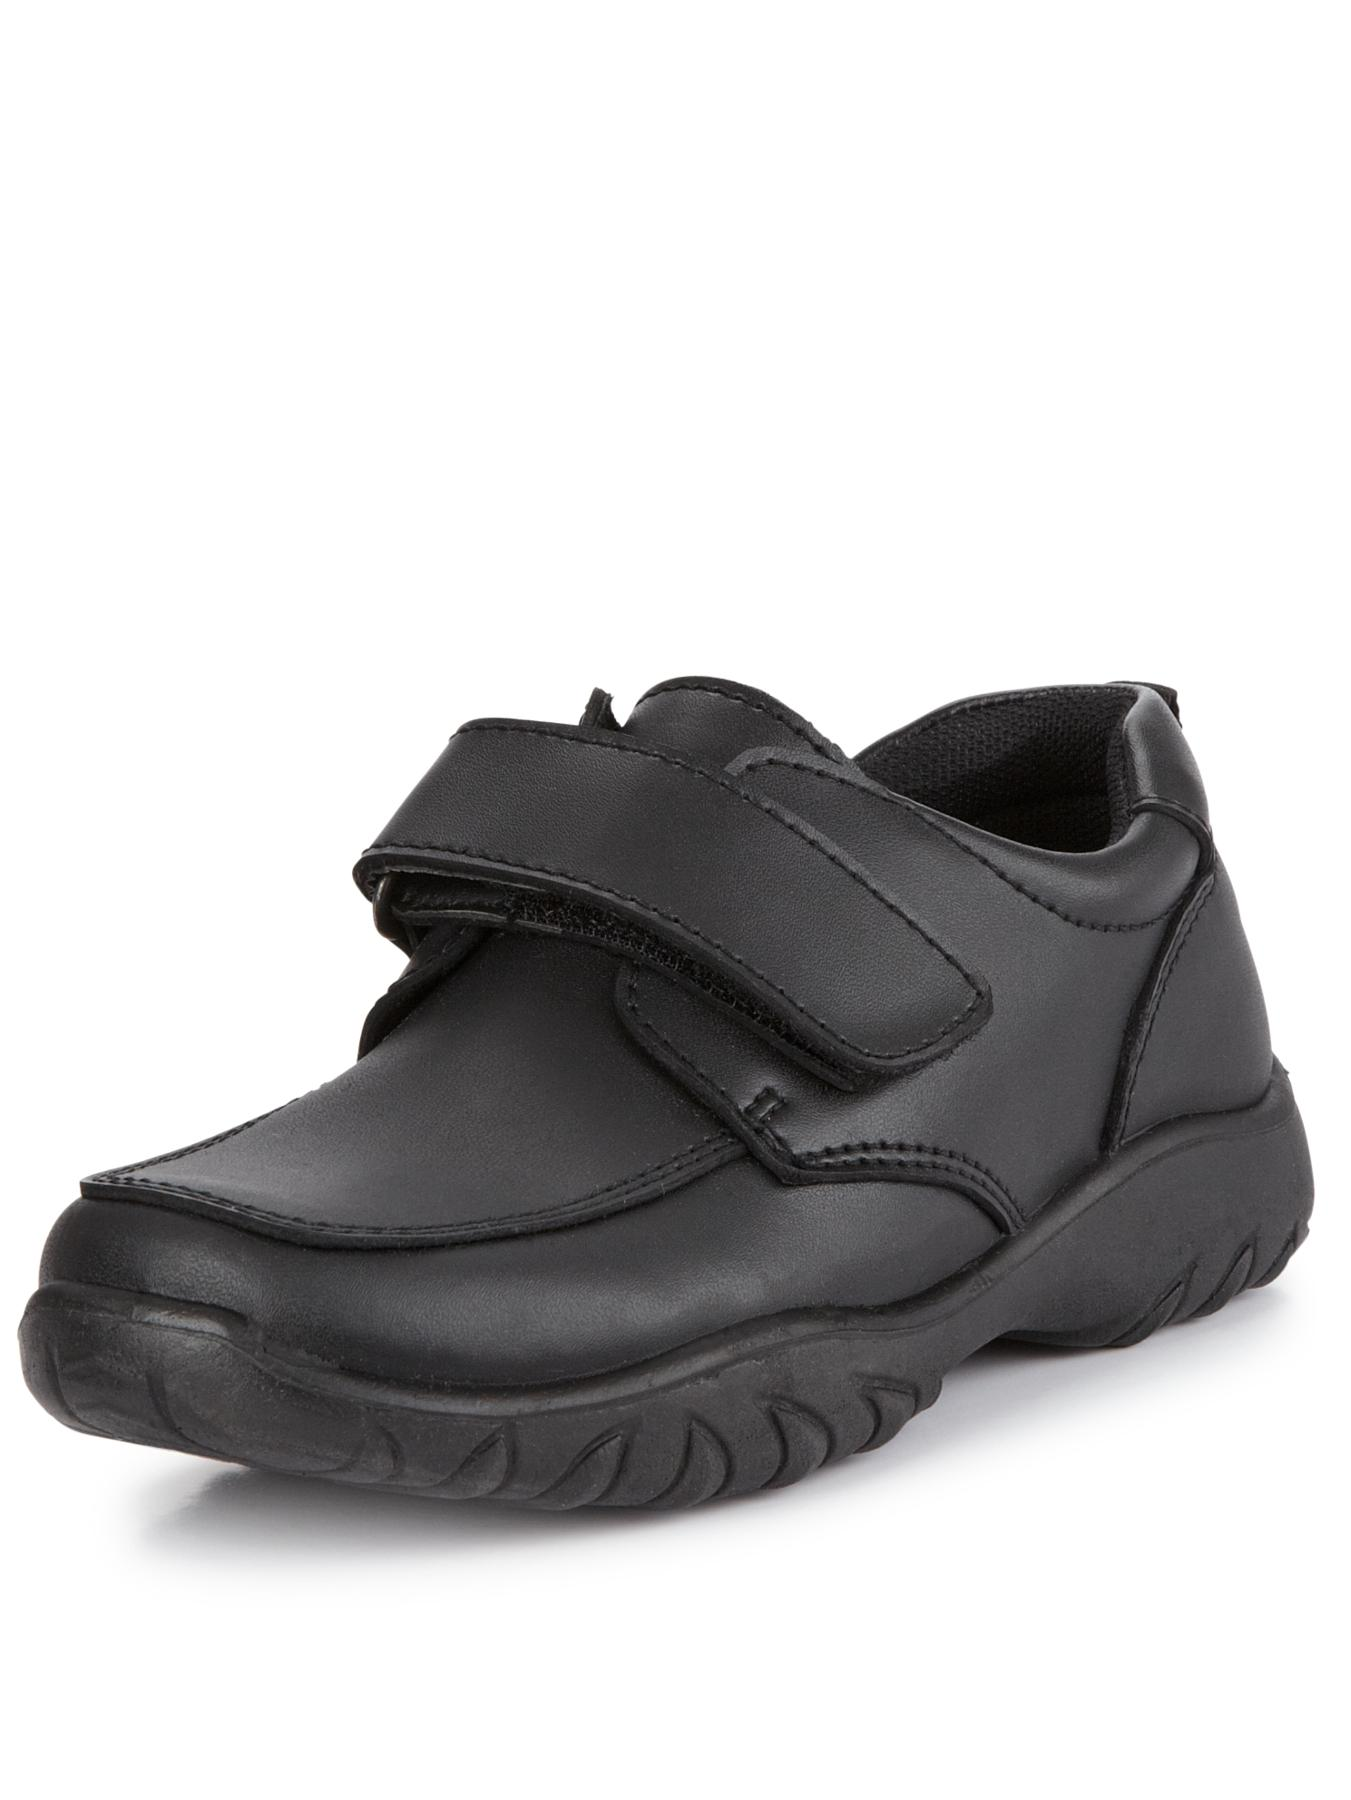 Ladybird Logan Toddler Boys Strap Shoes - Black, Black